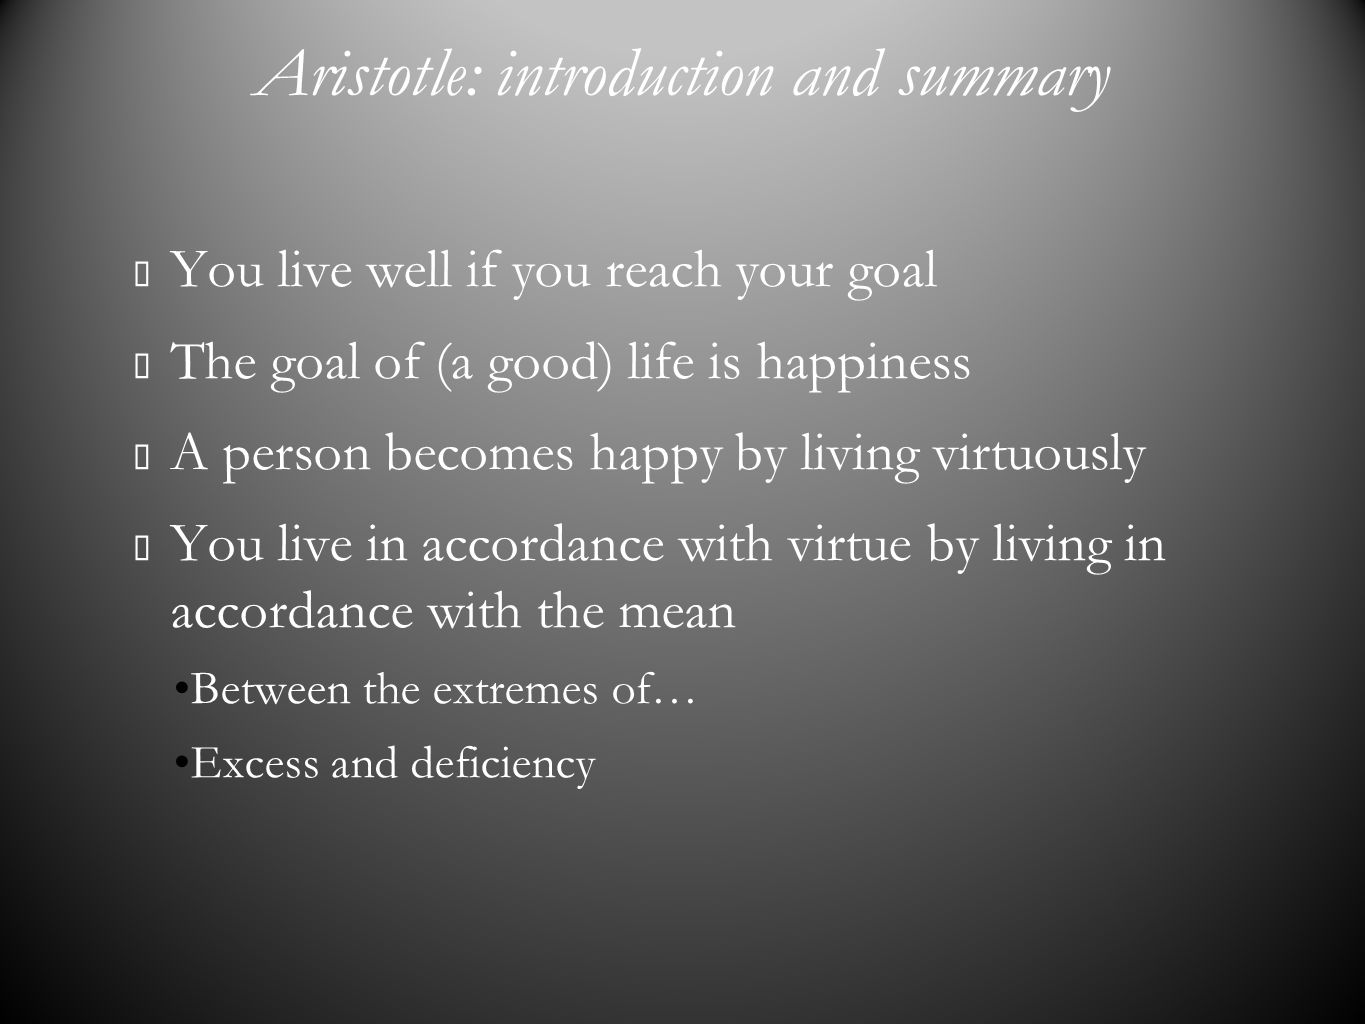 an introduction to the life and work of aristotle The meaning of life philosophy essay print  however pleasure and work in moderation and not excess aristotle emphasizes that life's meaning lies in our.